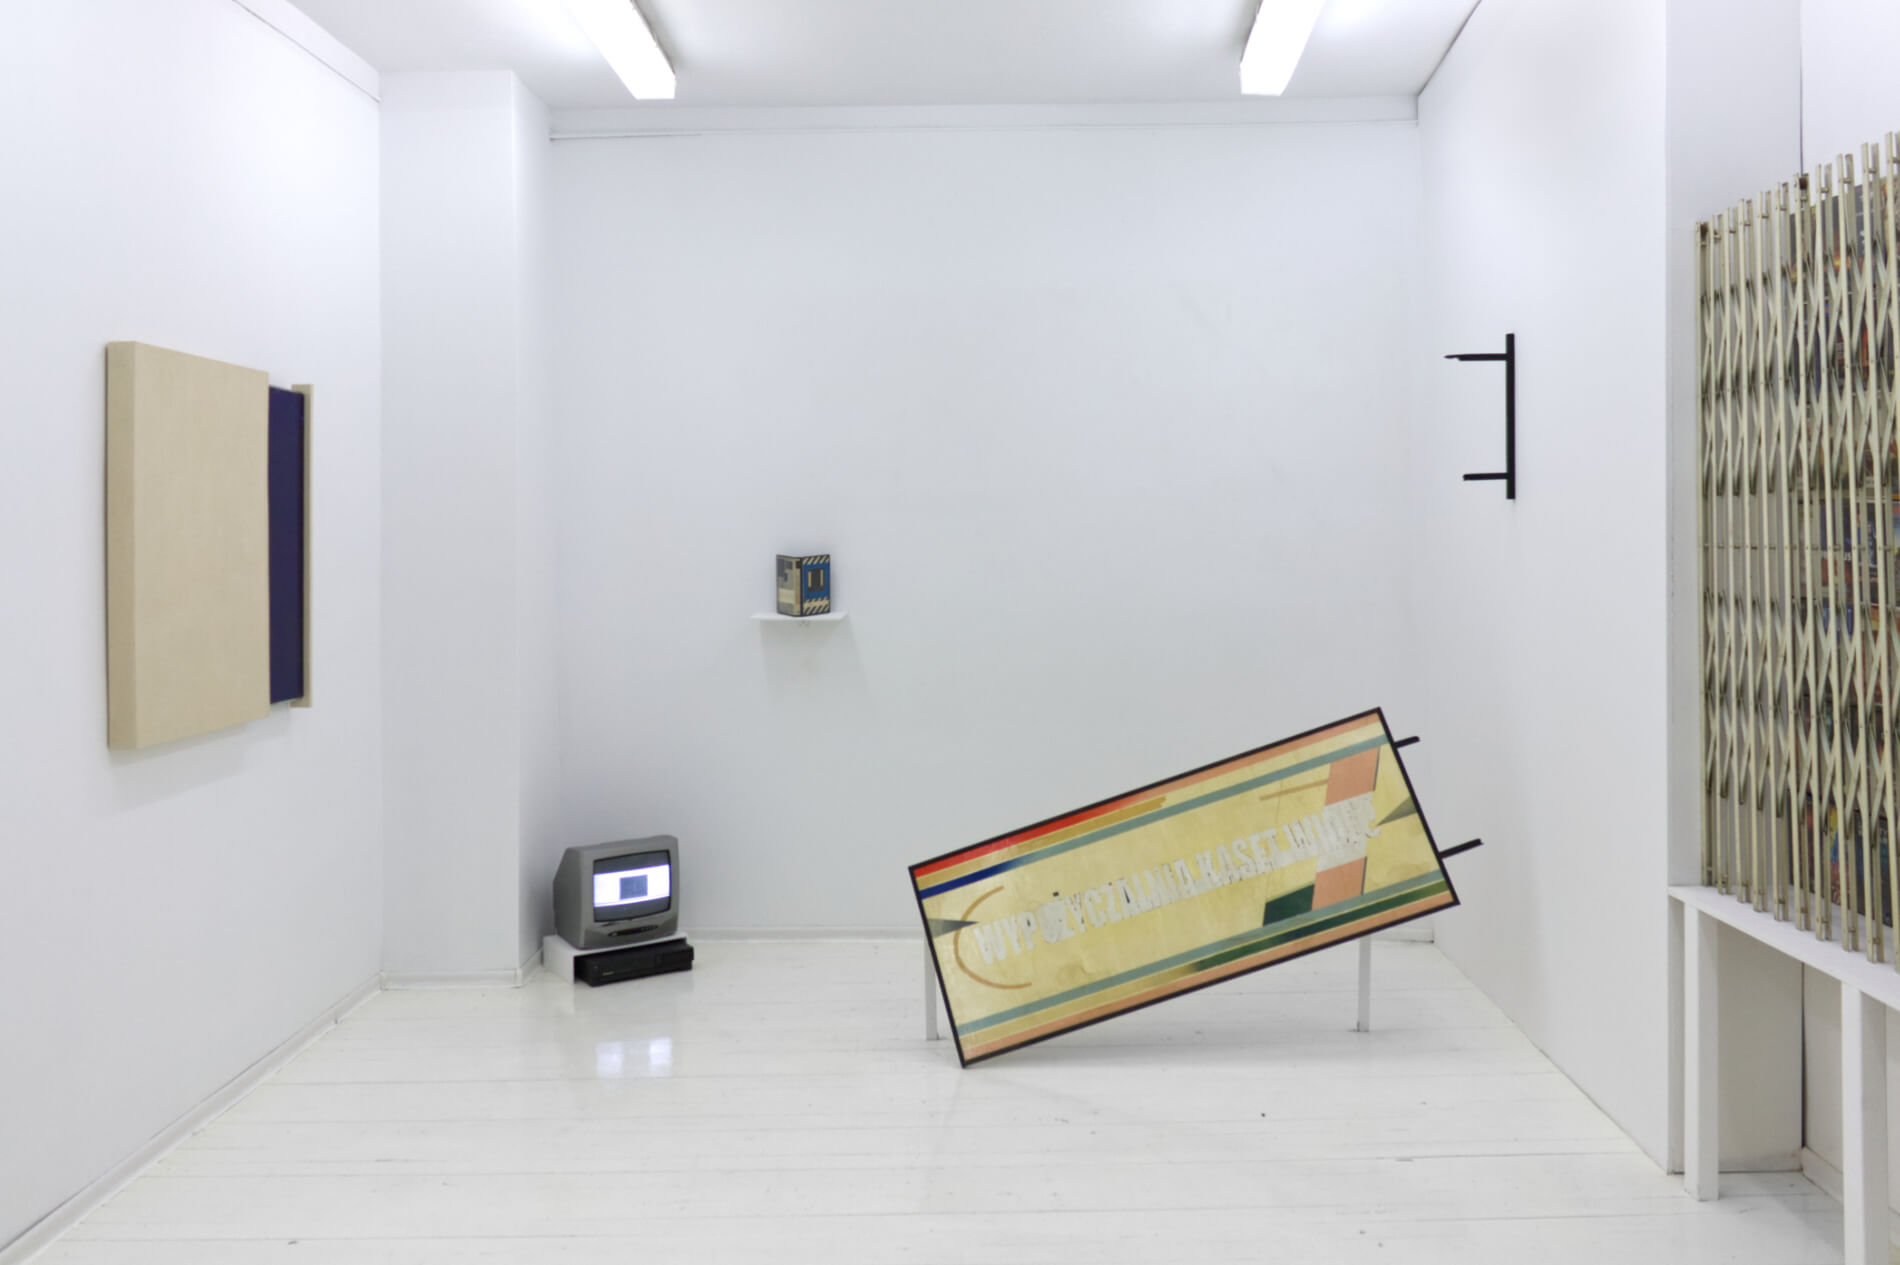 ADRIAN KOLERSKI exhibitions